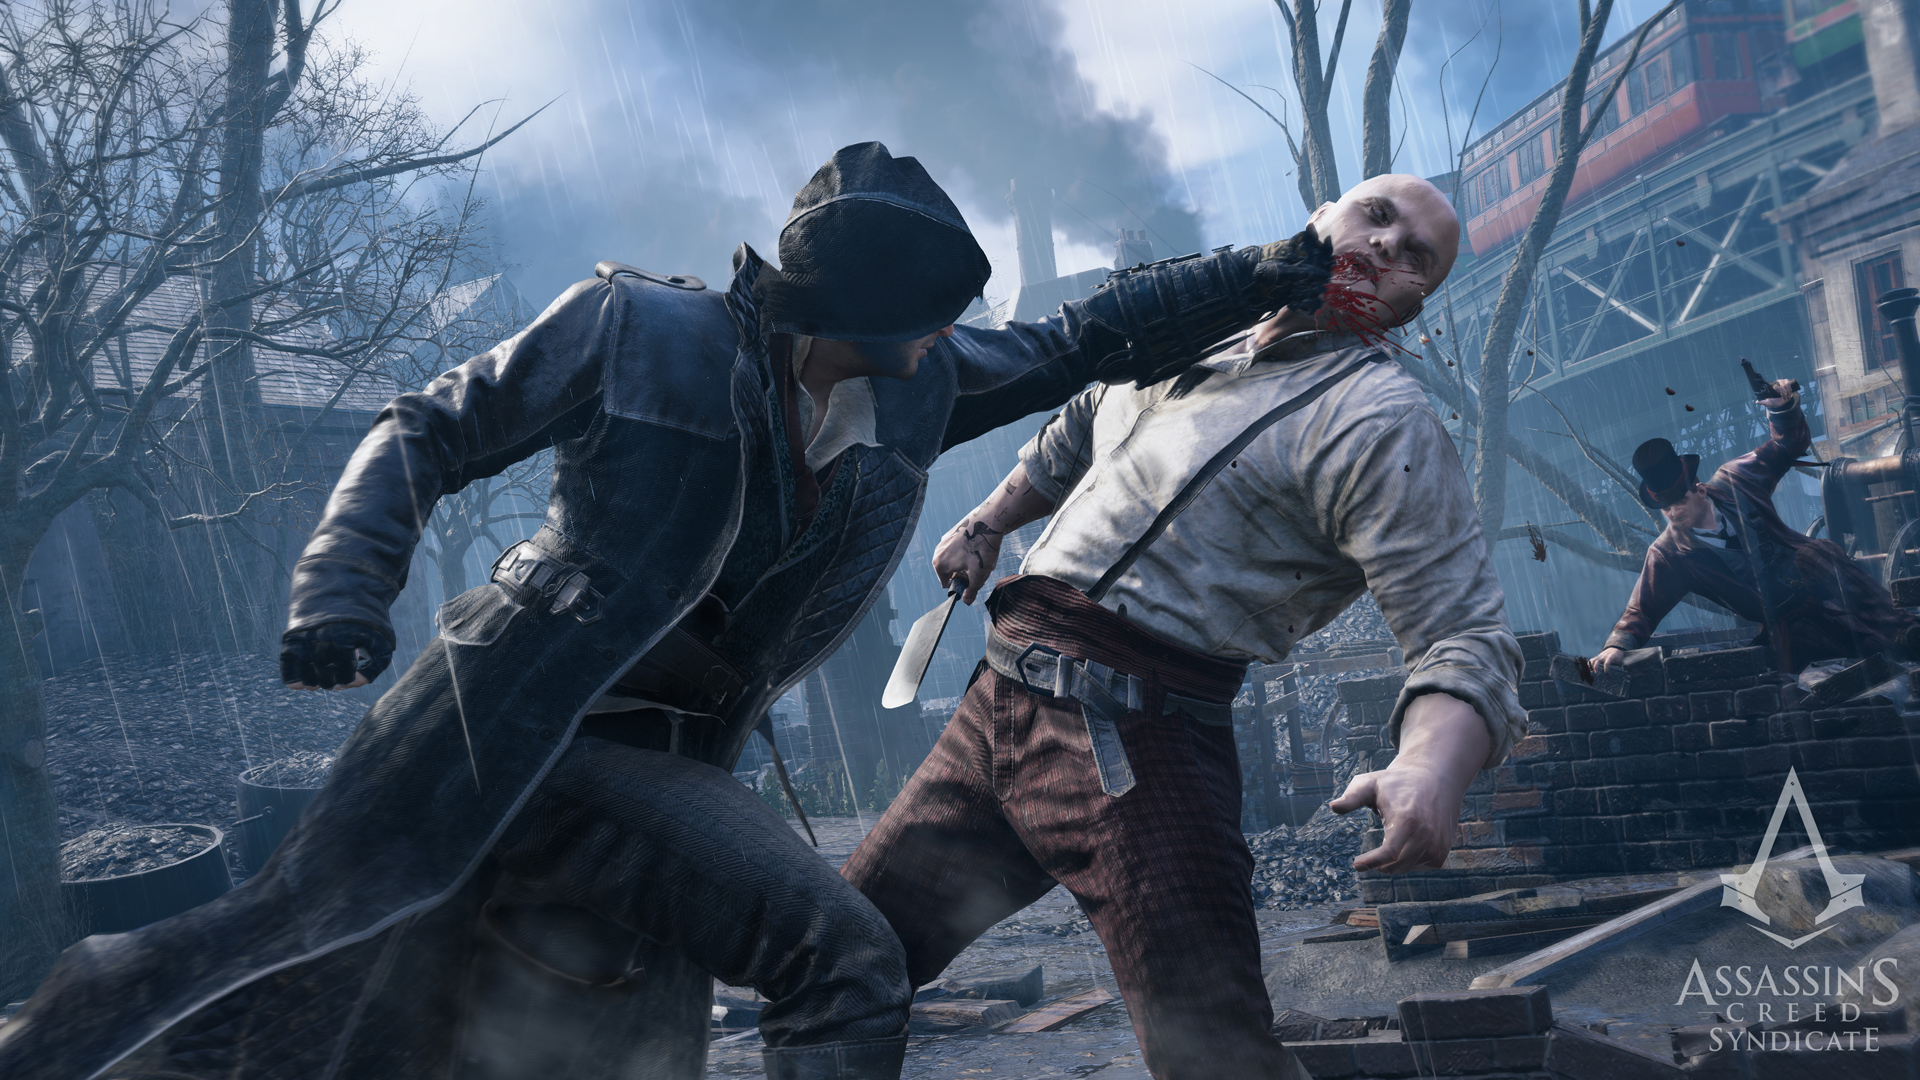 Assassin's creed syndicate 0xc000007 solution in windows 10 youtube.